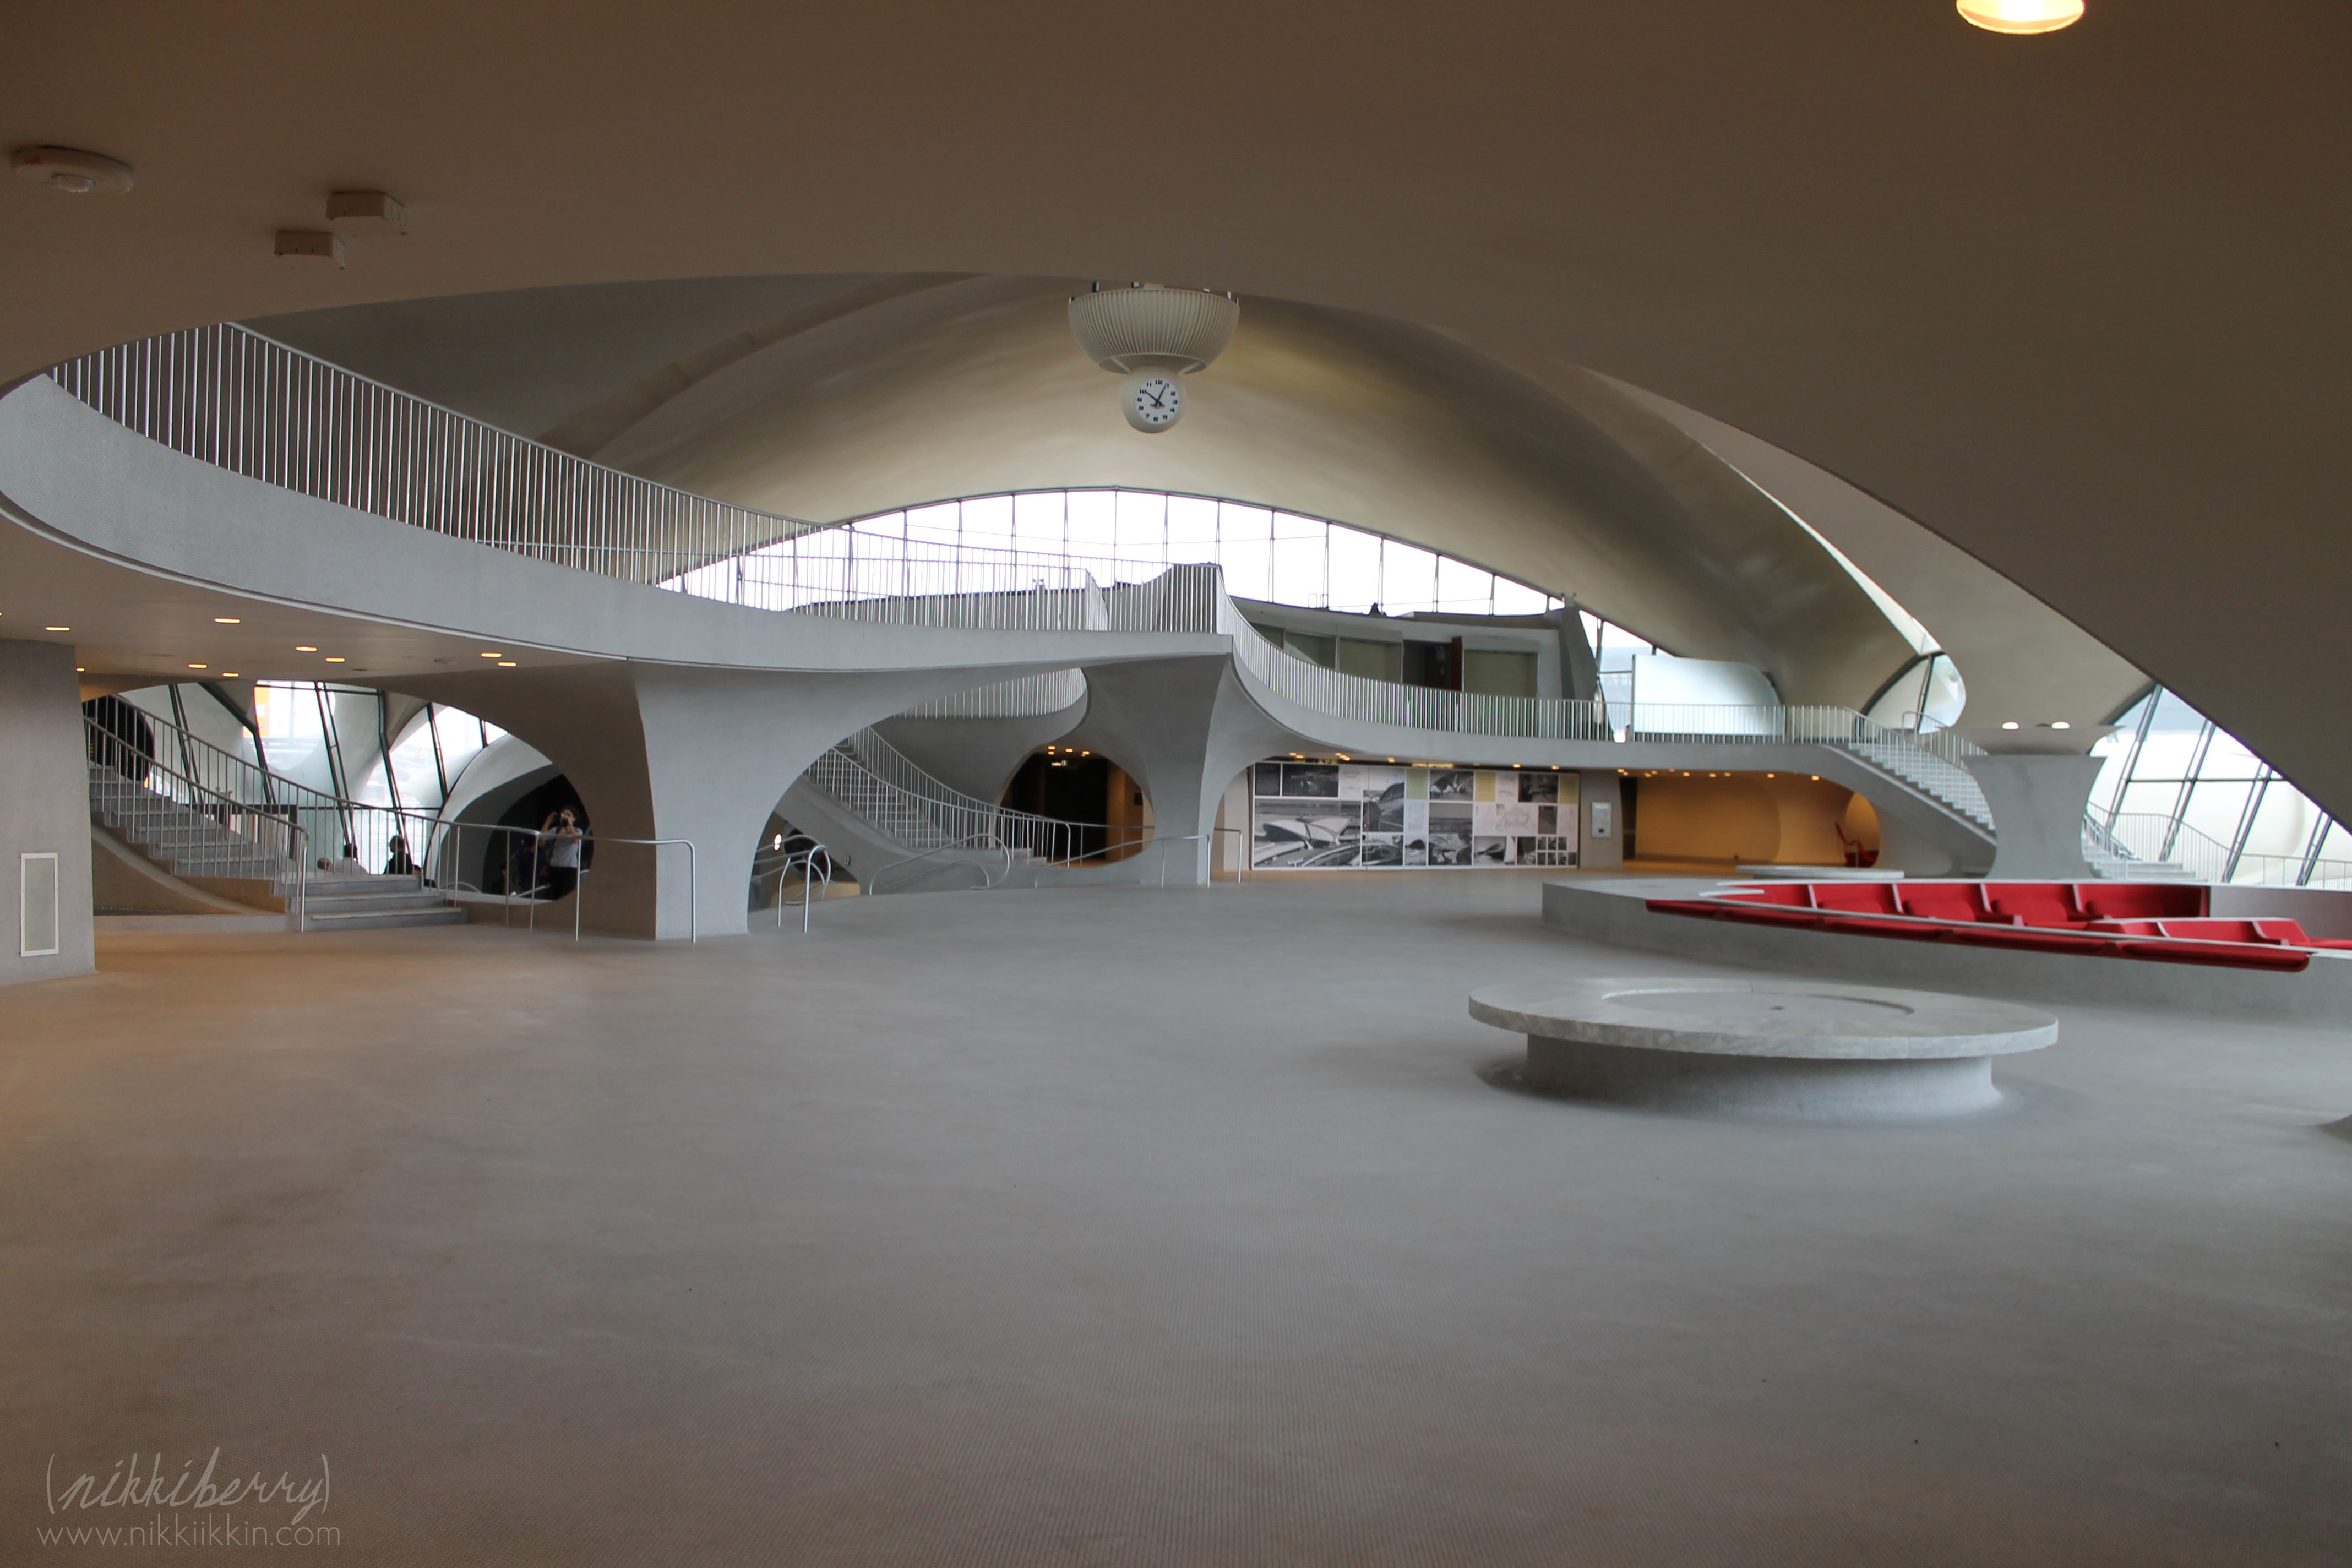 a tour of the historic twa flight center